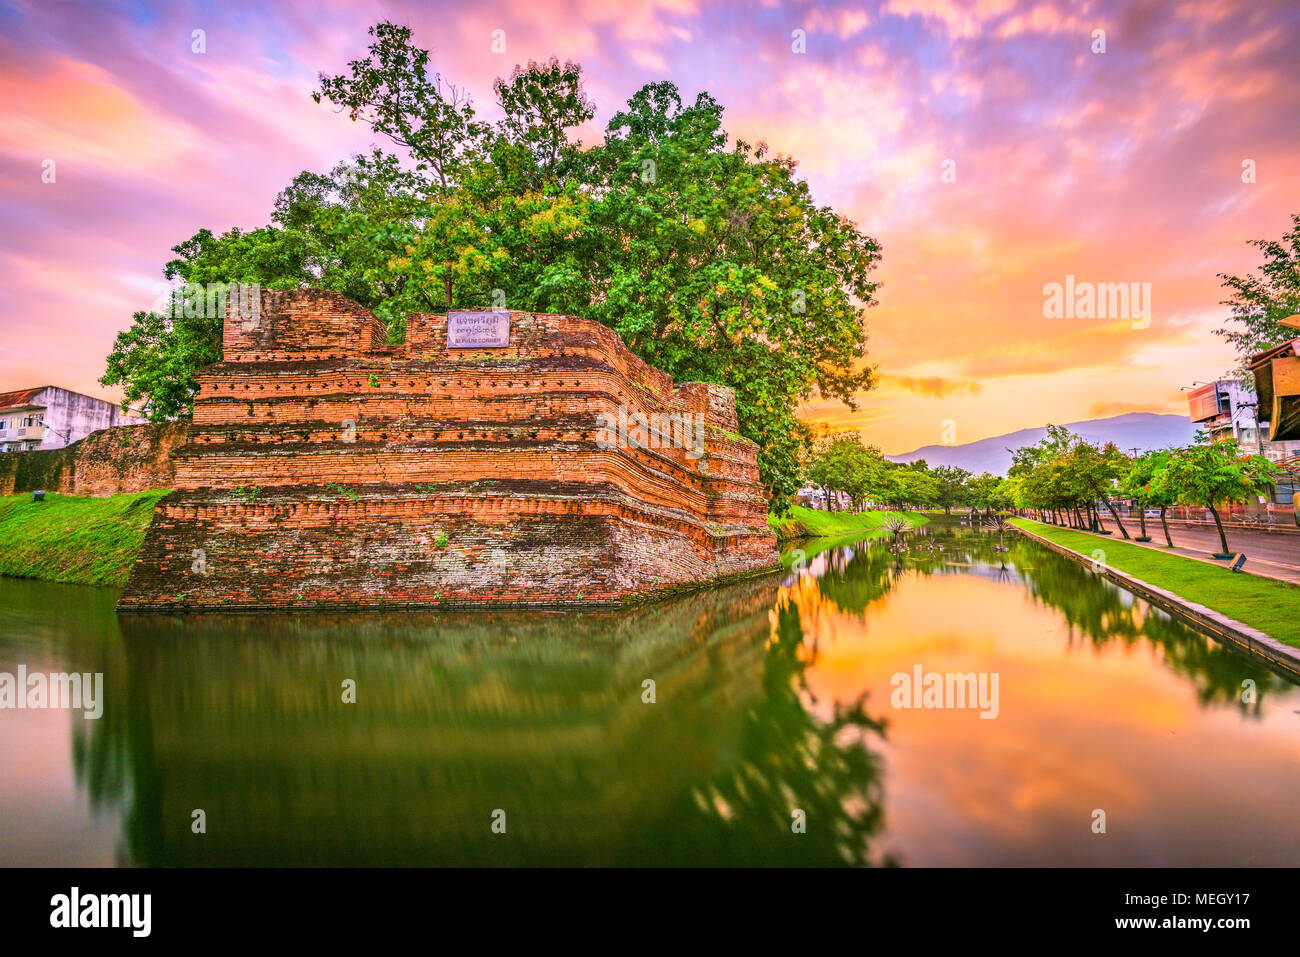 Chiang Mai, Thailand old city ancient wall and moat at dusk. - Stock Image